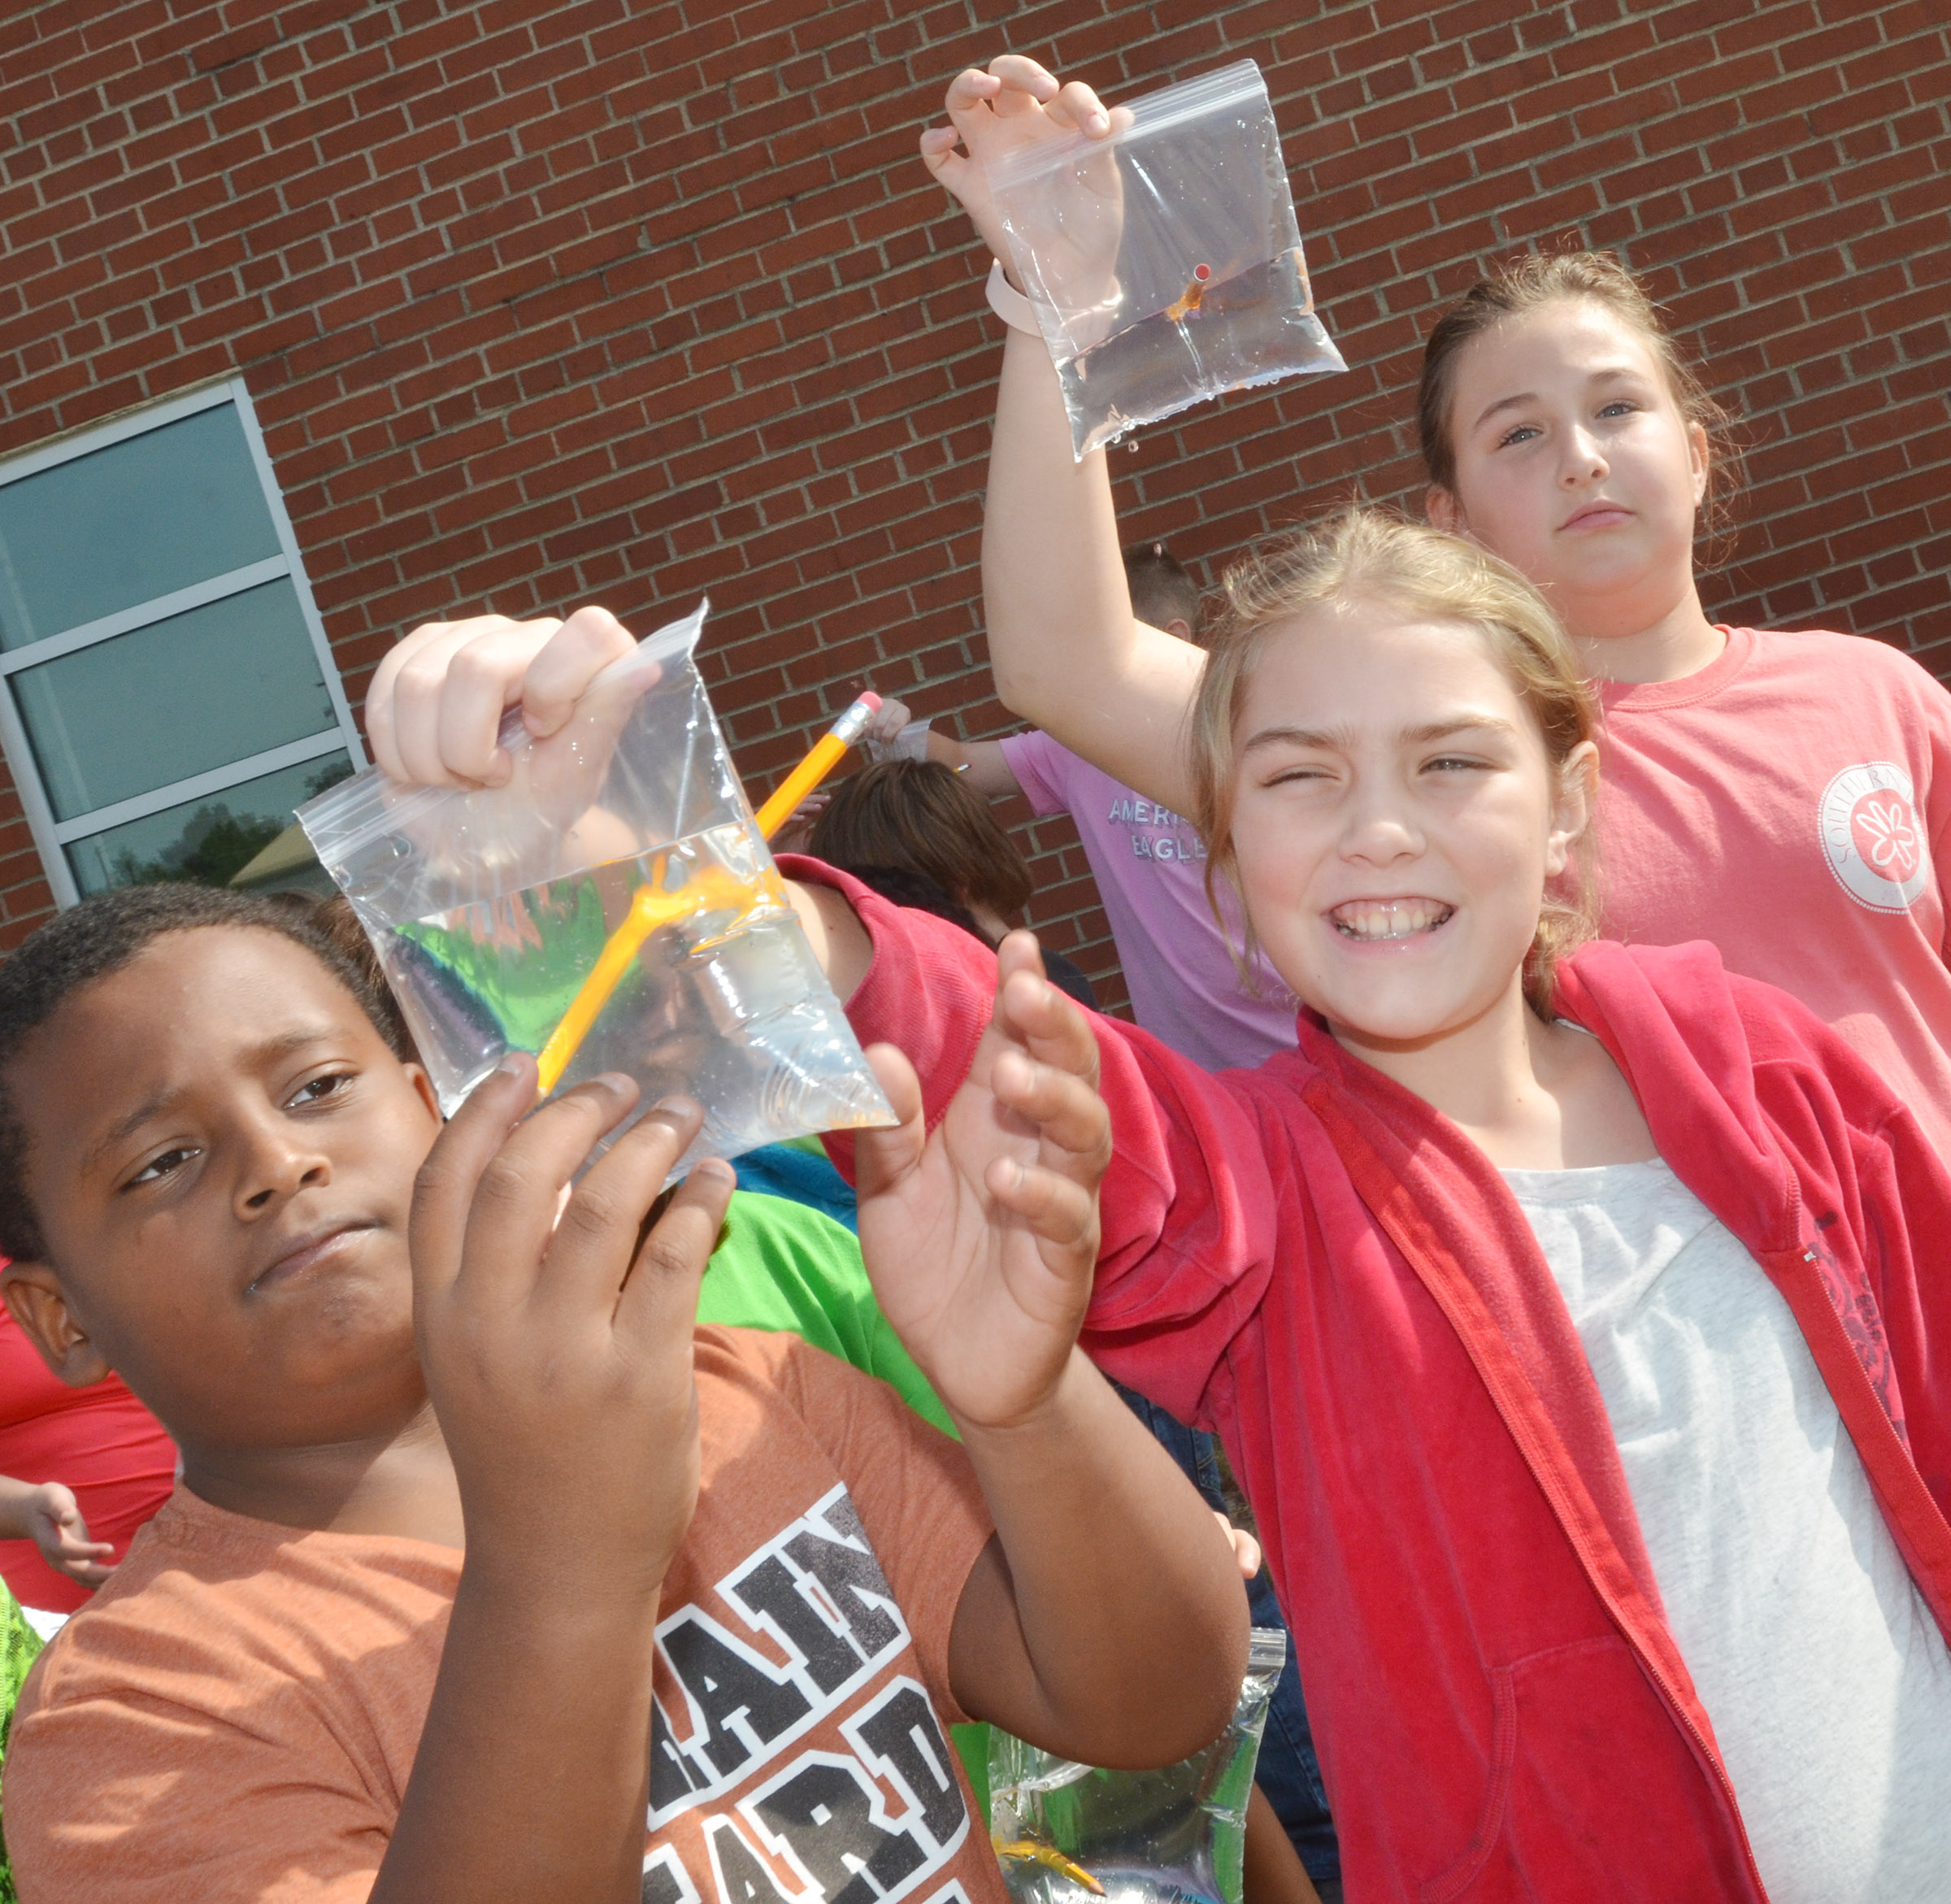 CES fifth-graders, from left, KeKe Miller, Harley Couch-Allen and Riley Newton see how a Ziploc bag acts as a polymer, and, therefore, water inside doesn't spill when a pencil pierces the bag.